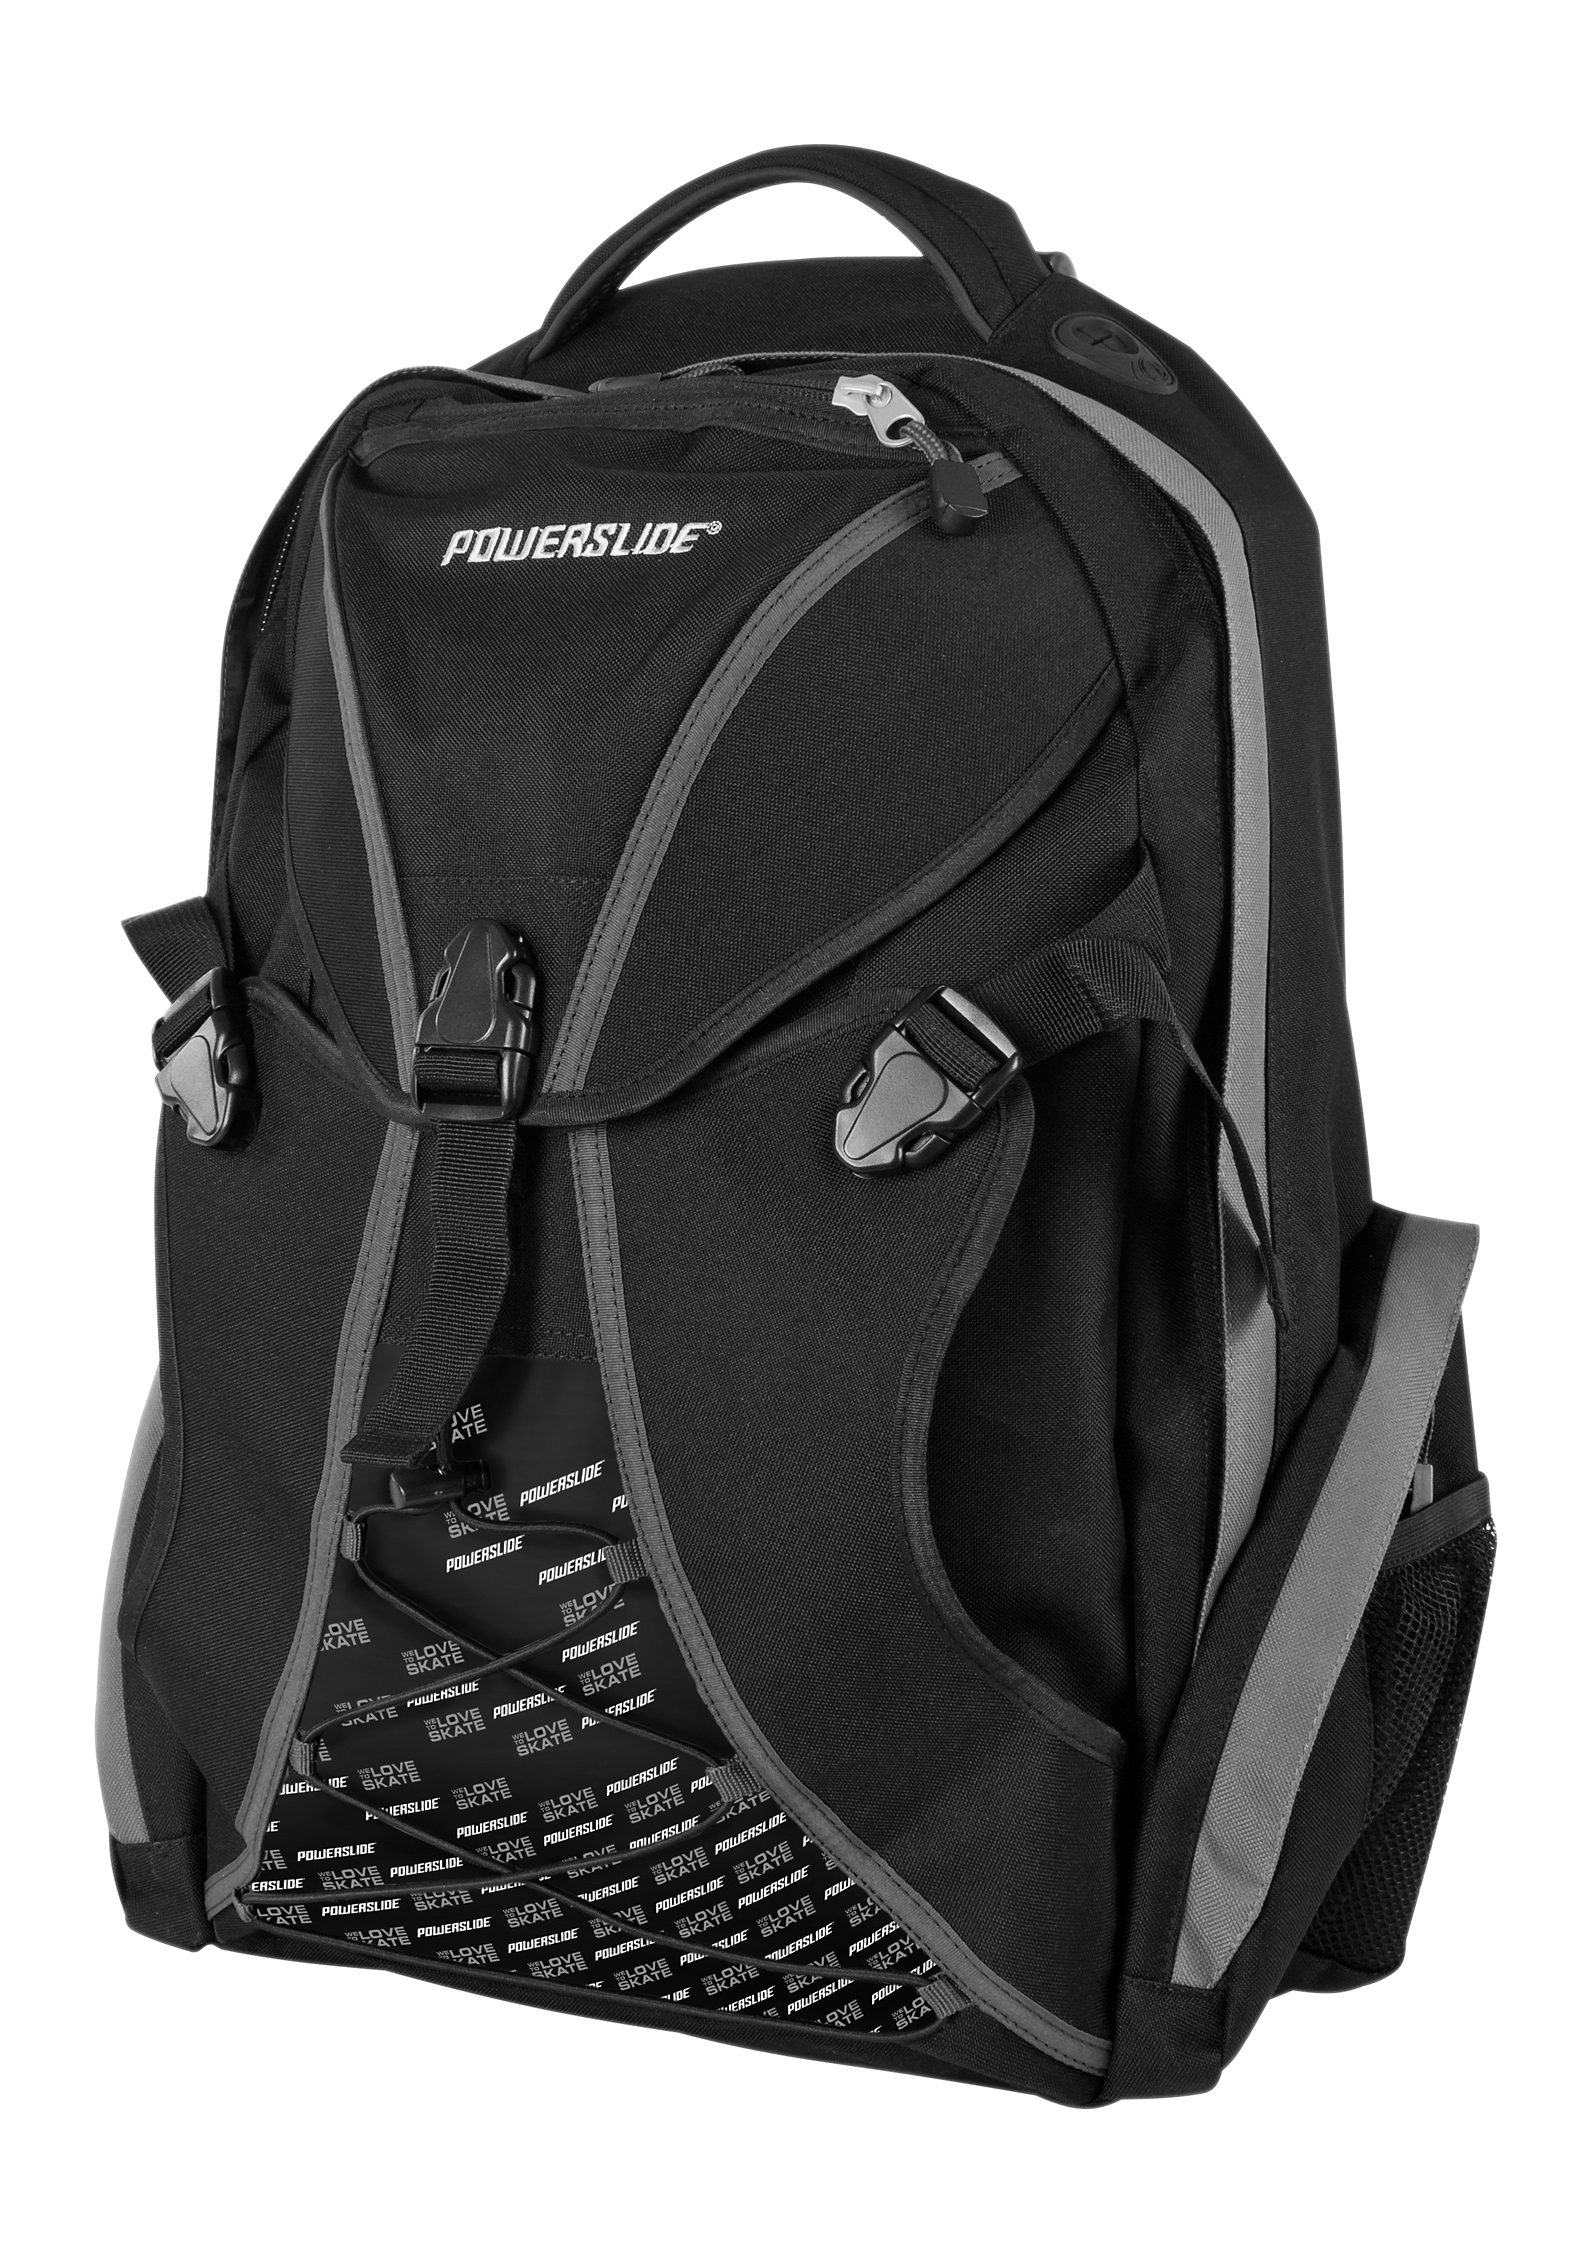 Powerslide Rucksack für Skater, »Sports Backpack«